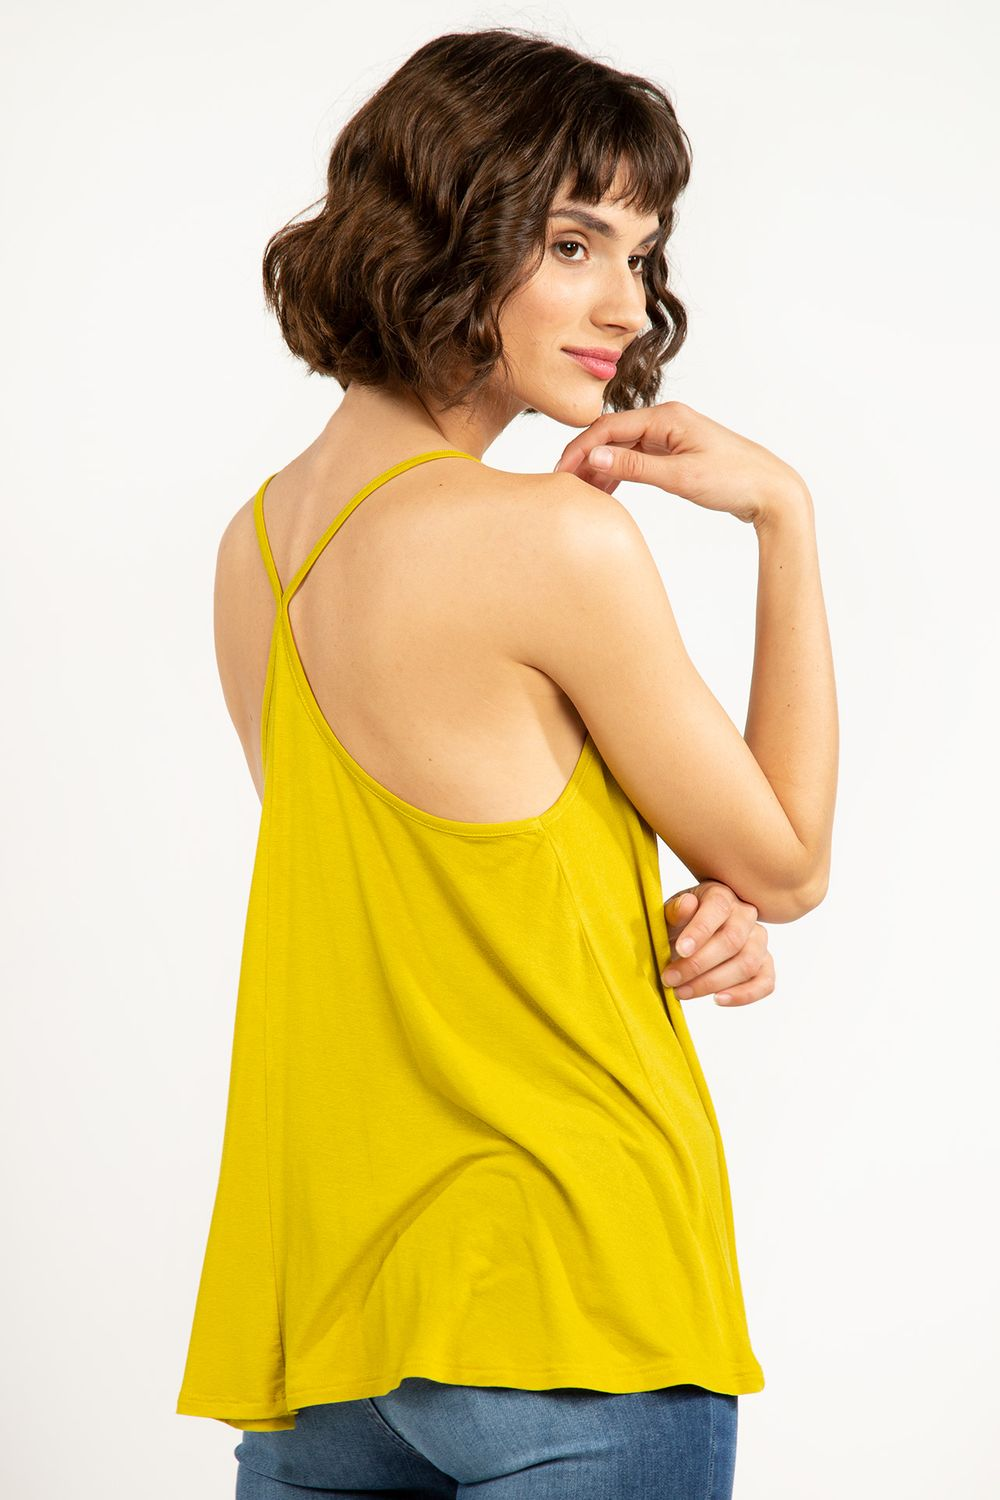 Musculosa-Let-Lima-42